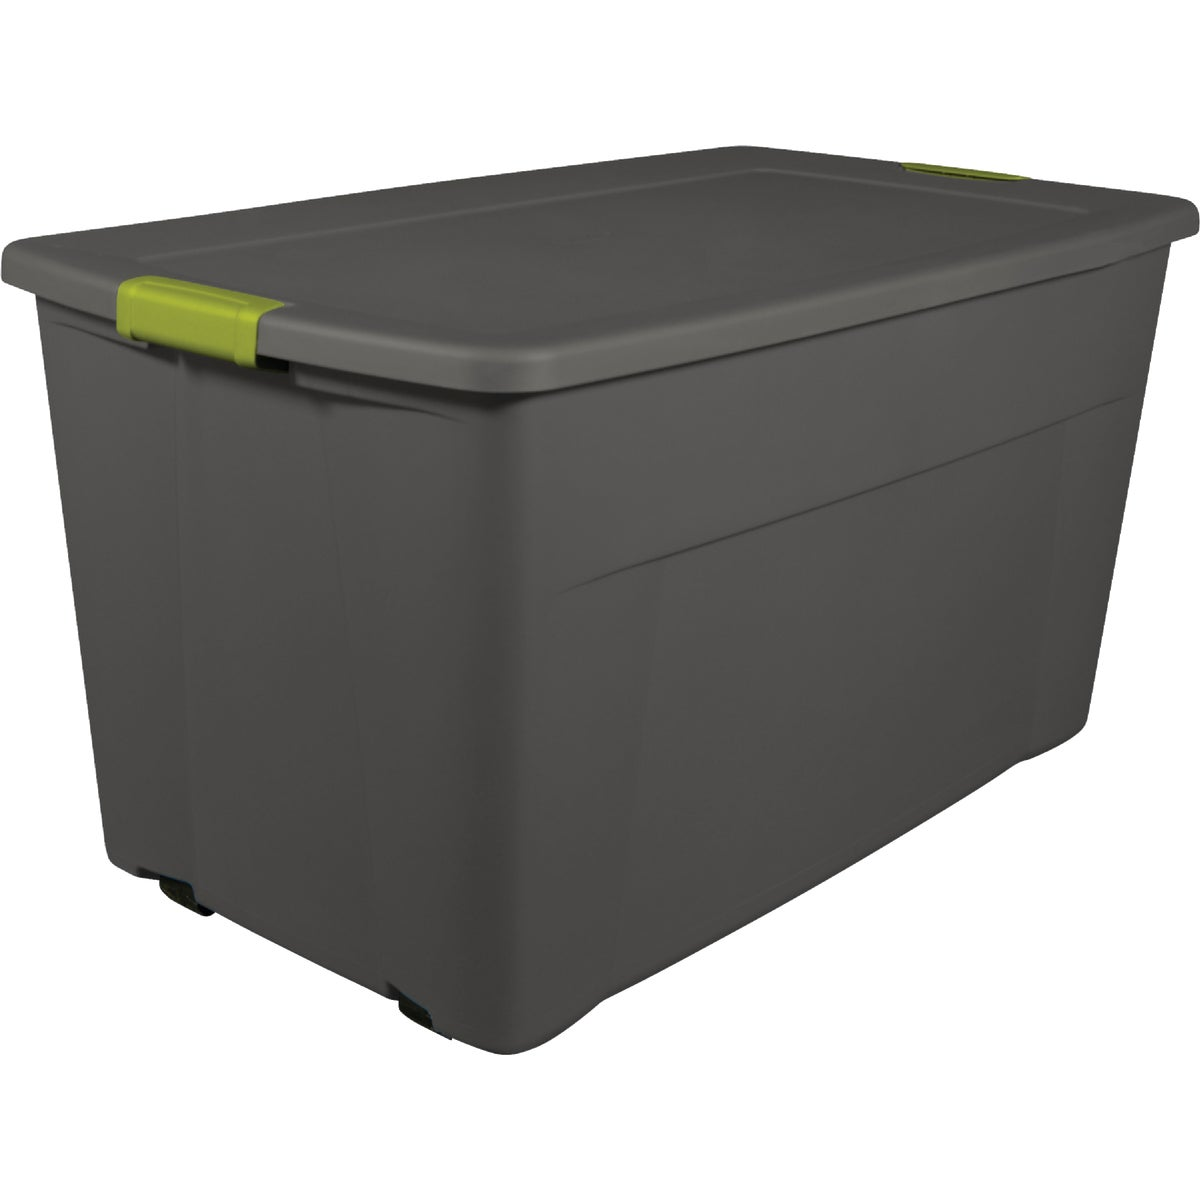 45 GALLON TOTE BOX - 19481004 by Sterilite Corp